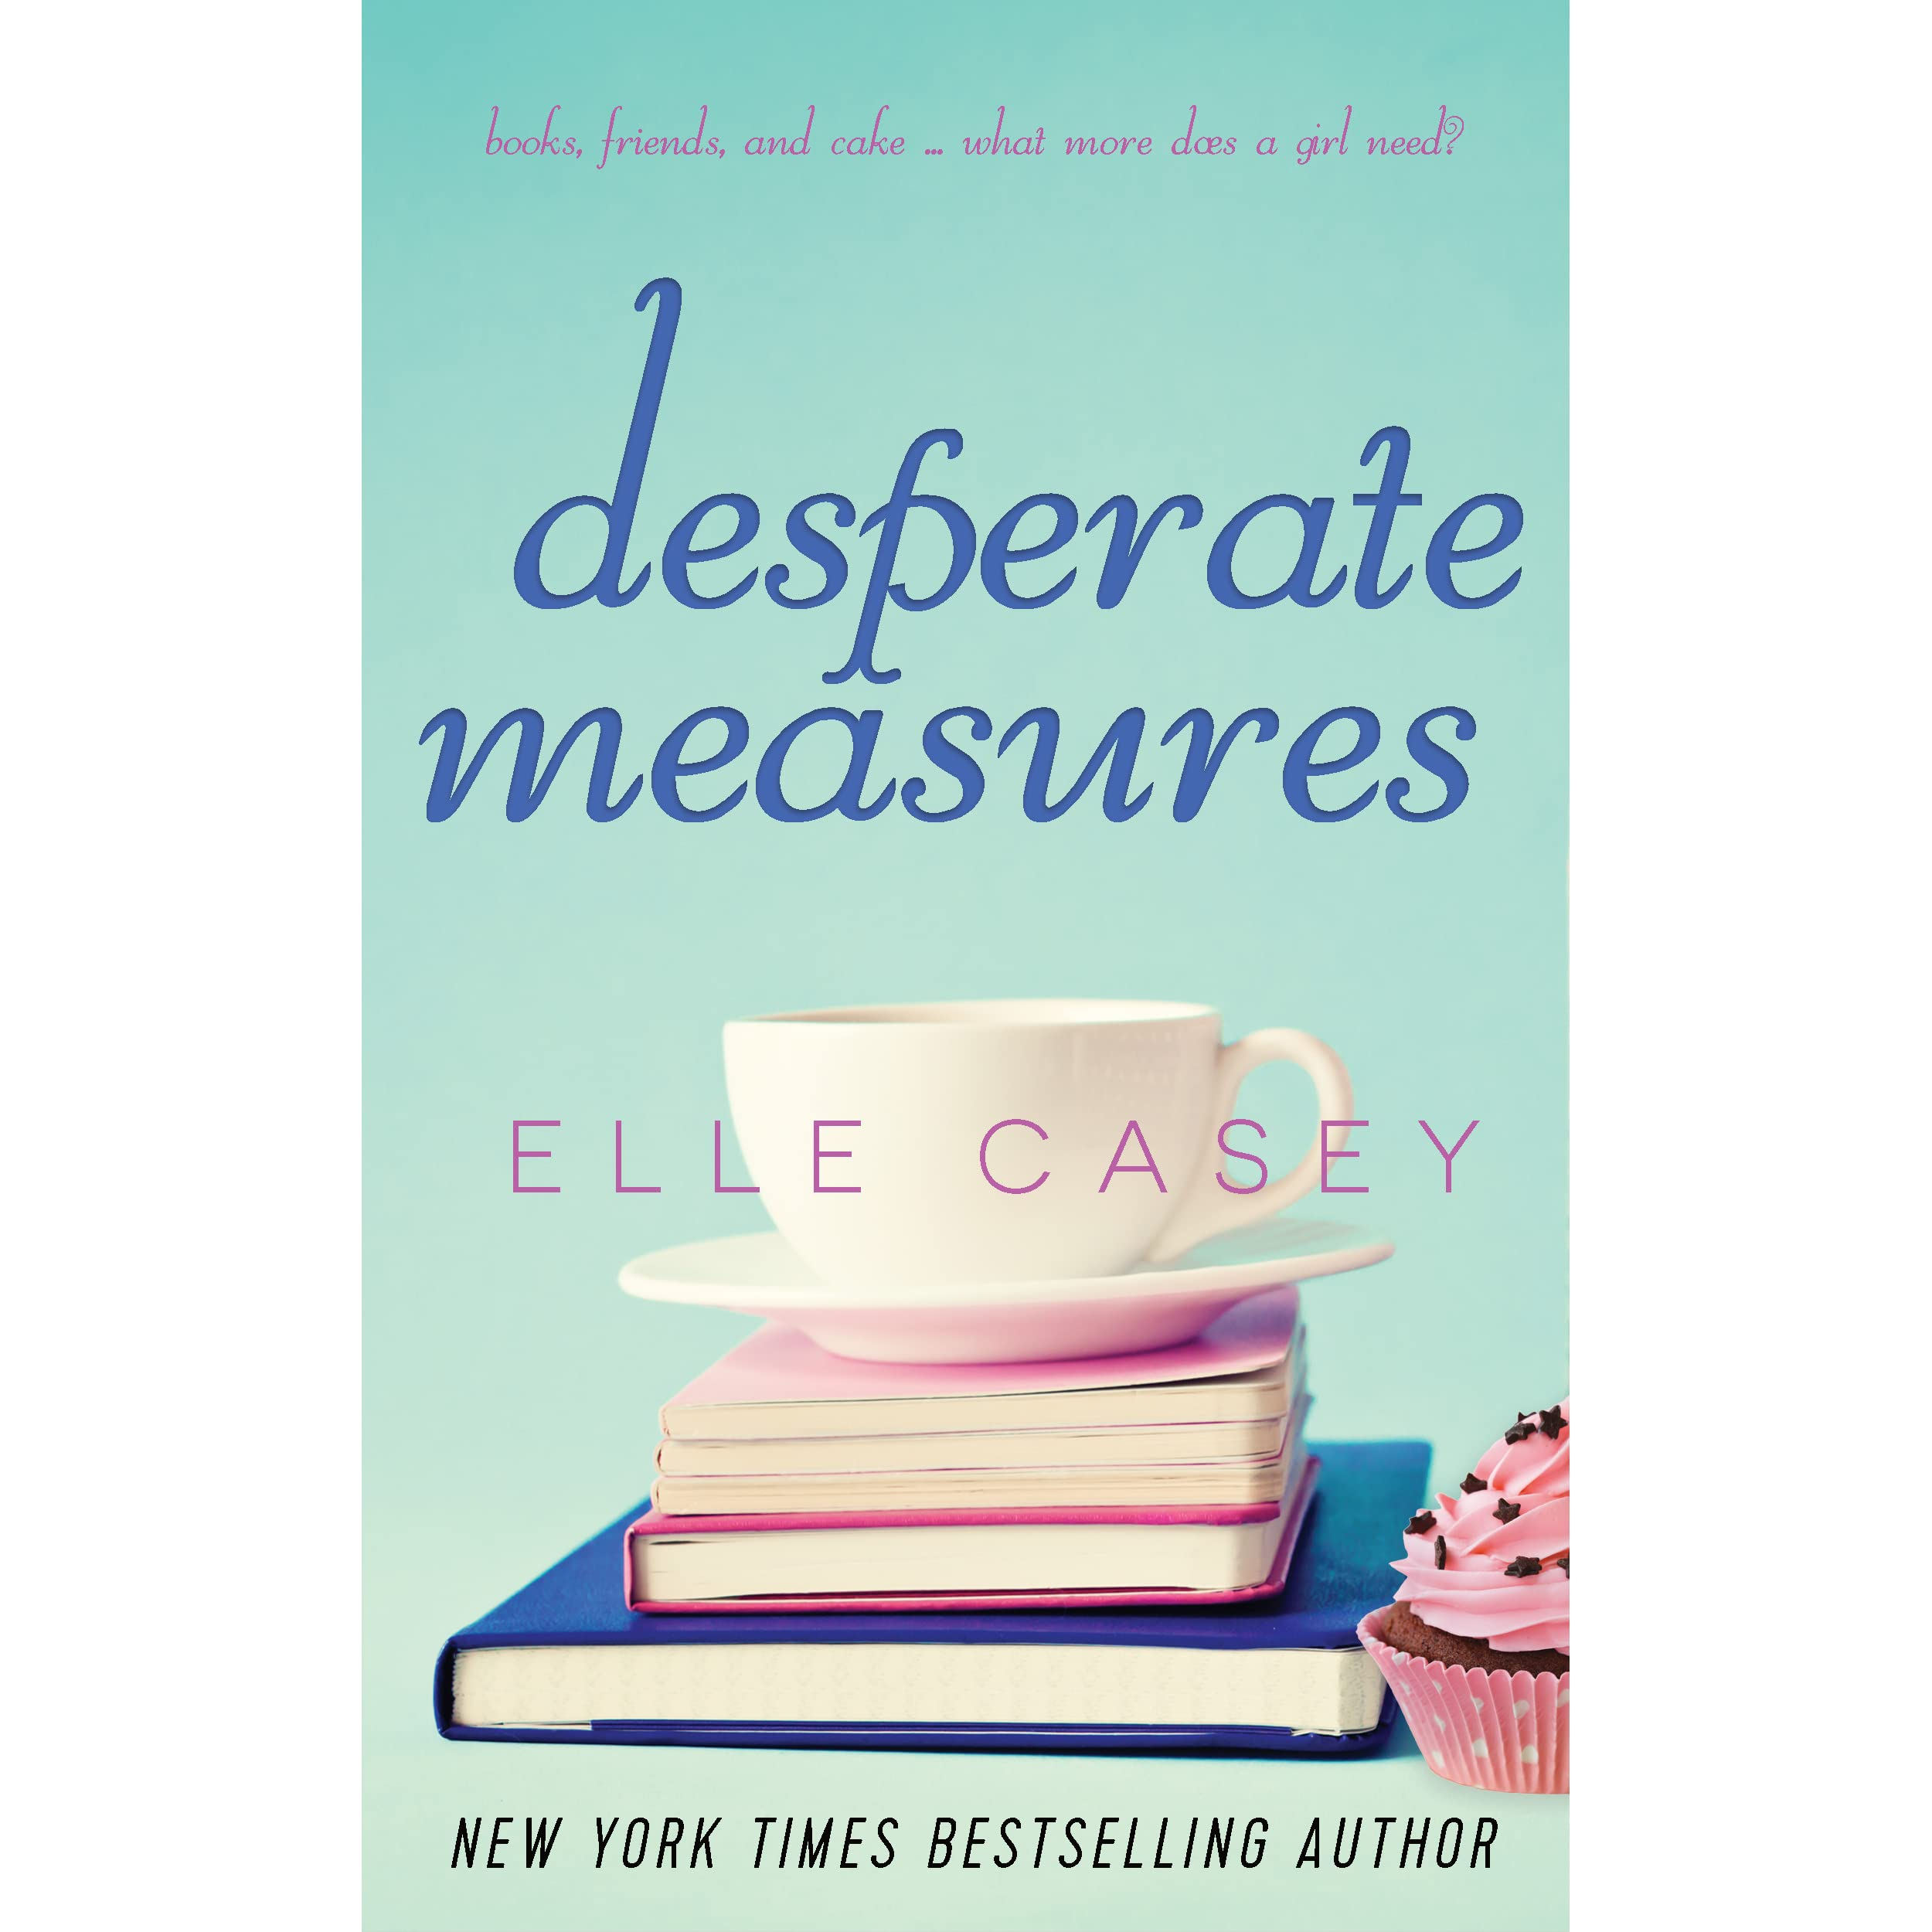 Full measures goodreads giveaways